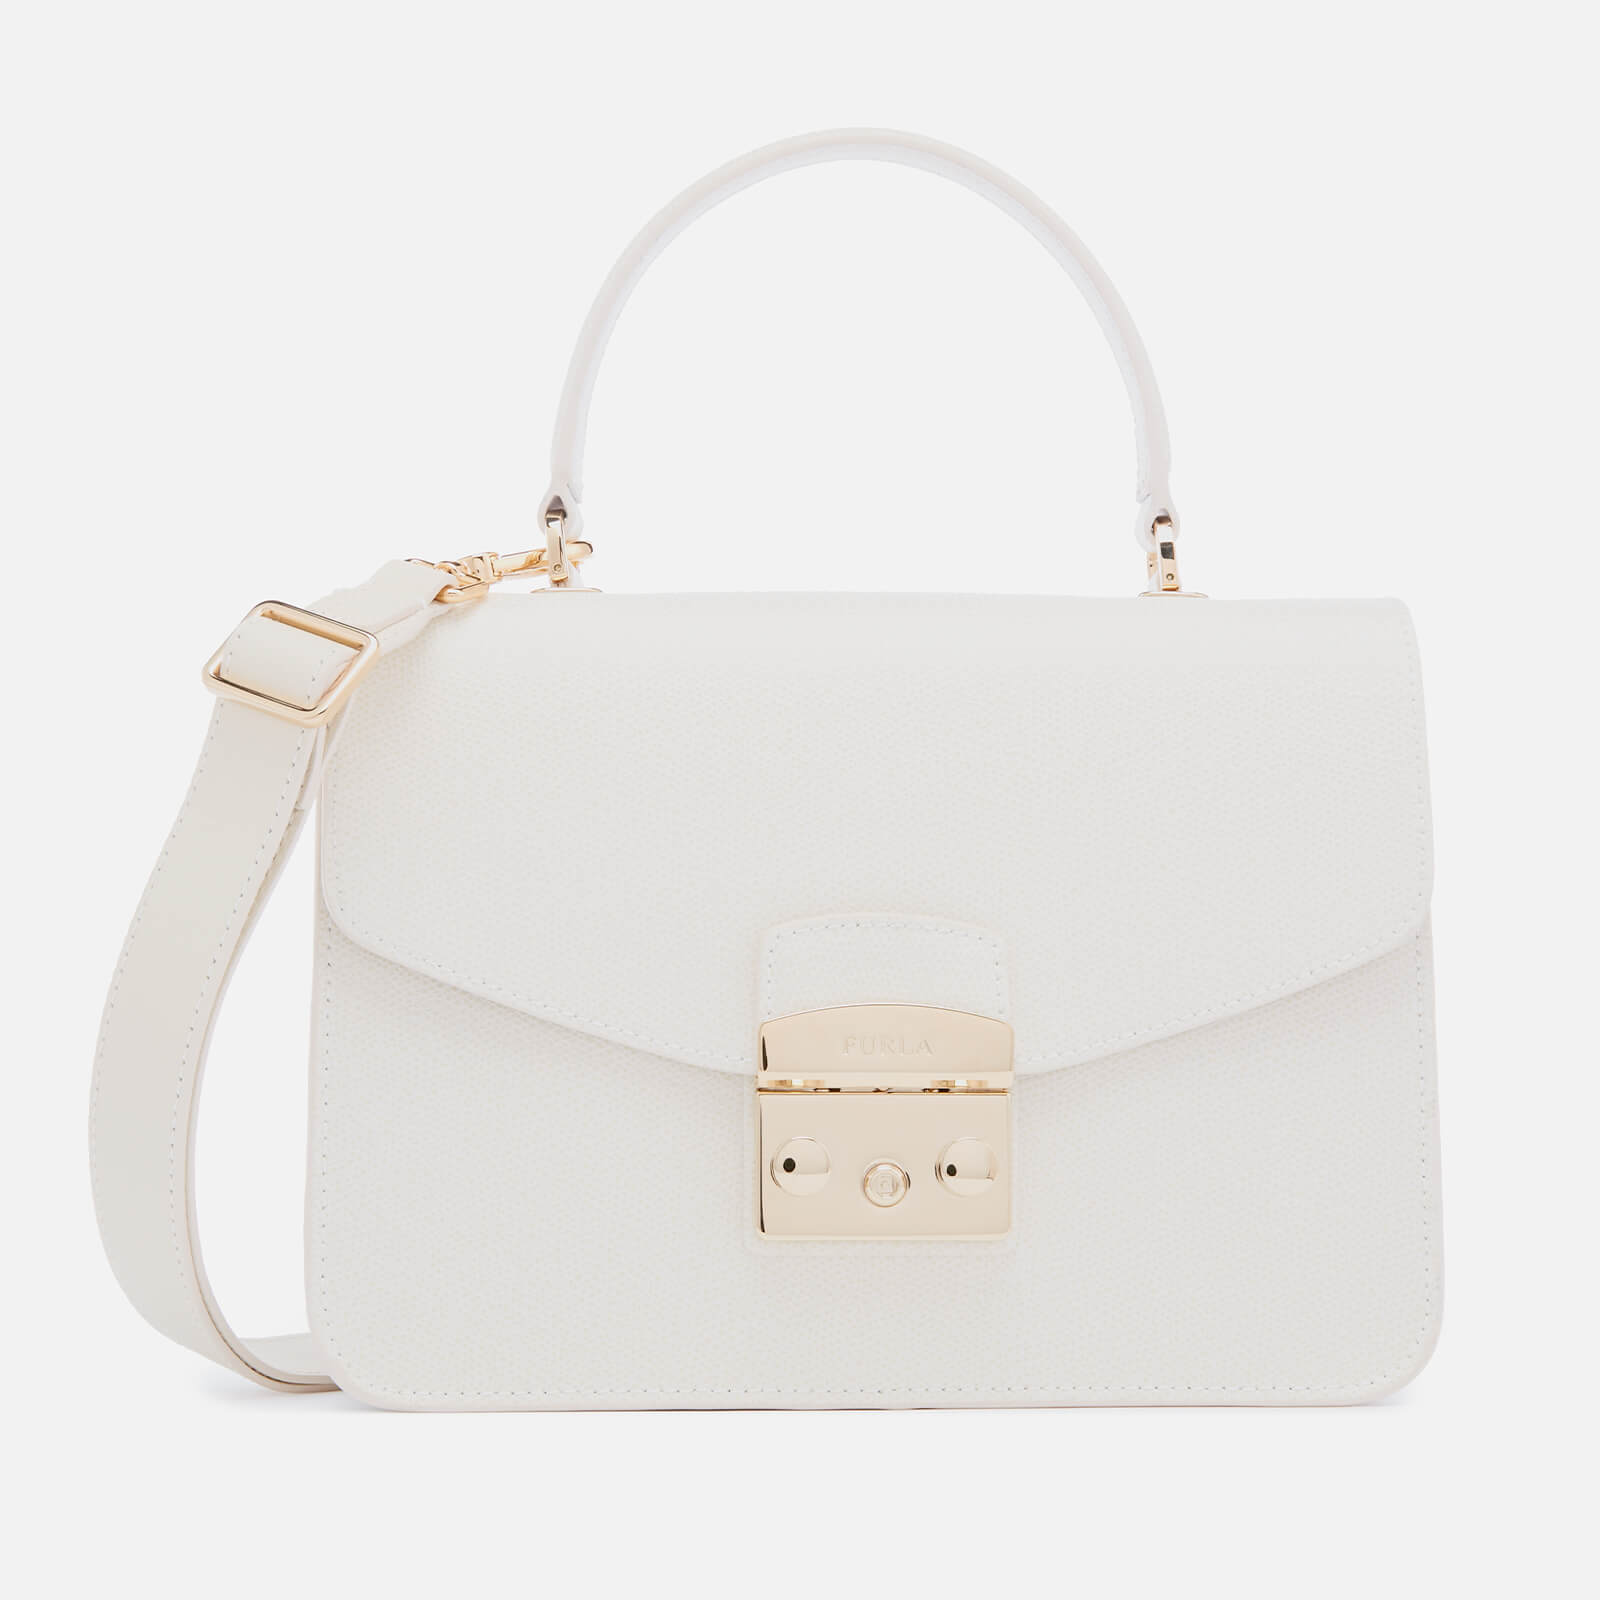 4ed2f23120738 Furla Women s Metropolis Small Top Handle Bag - White - Free UK Delivery  over £50